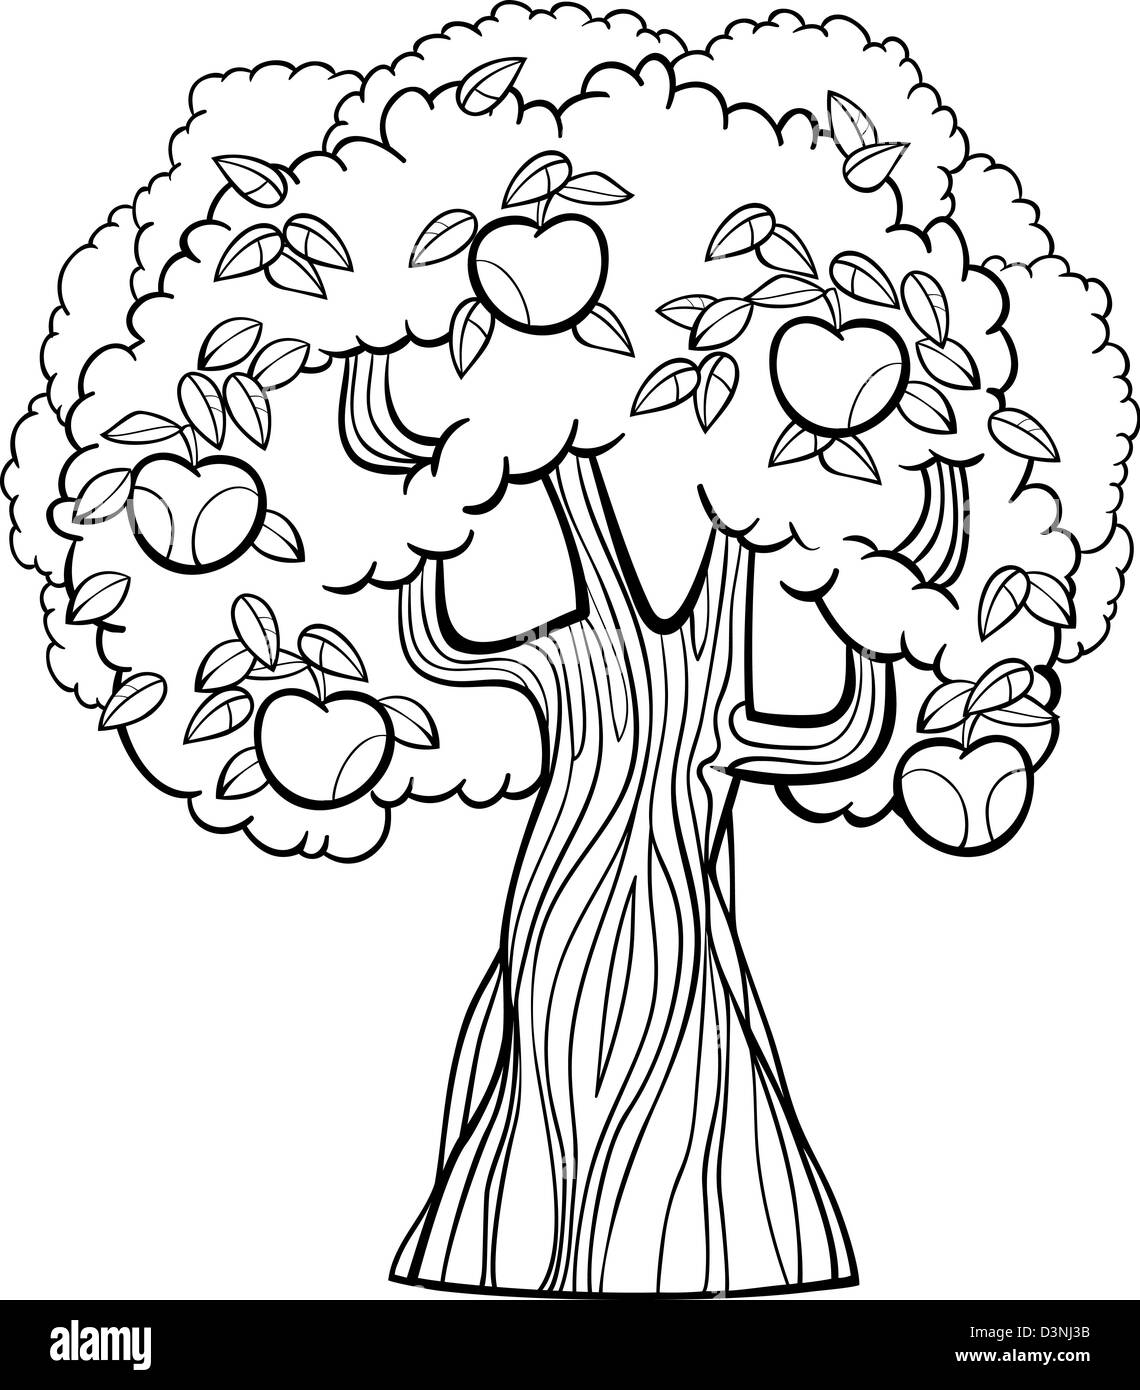 Black and White Cartoon Illustration of Apple Tree with Apples for ...